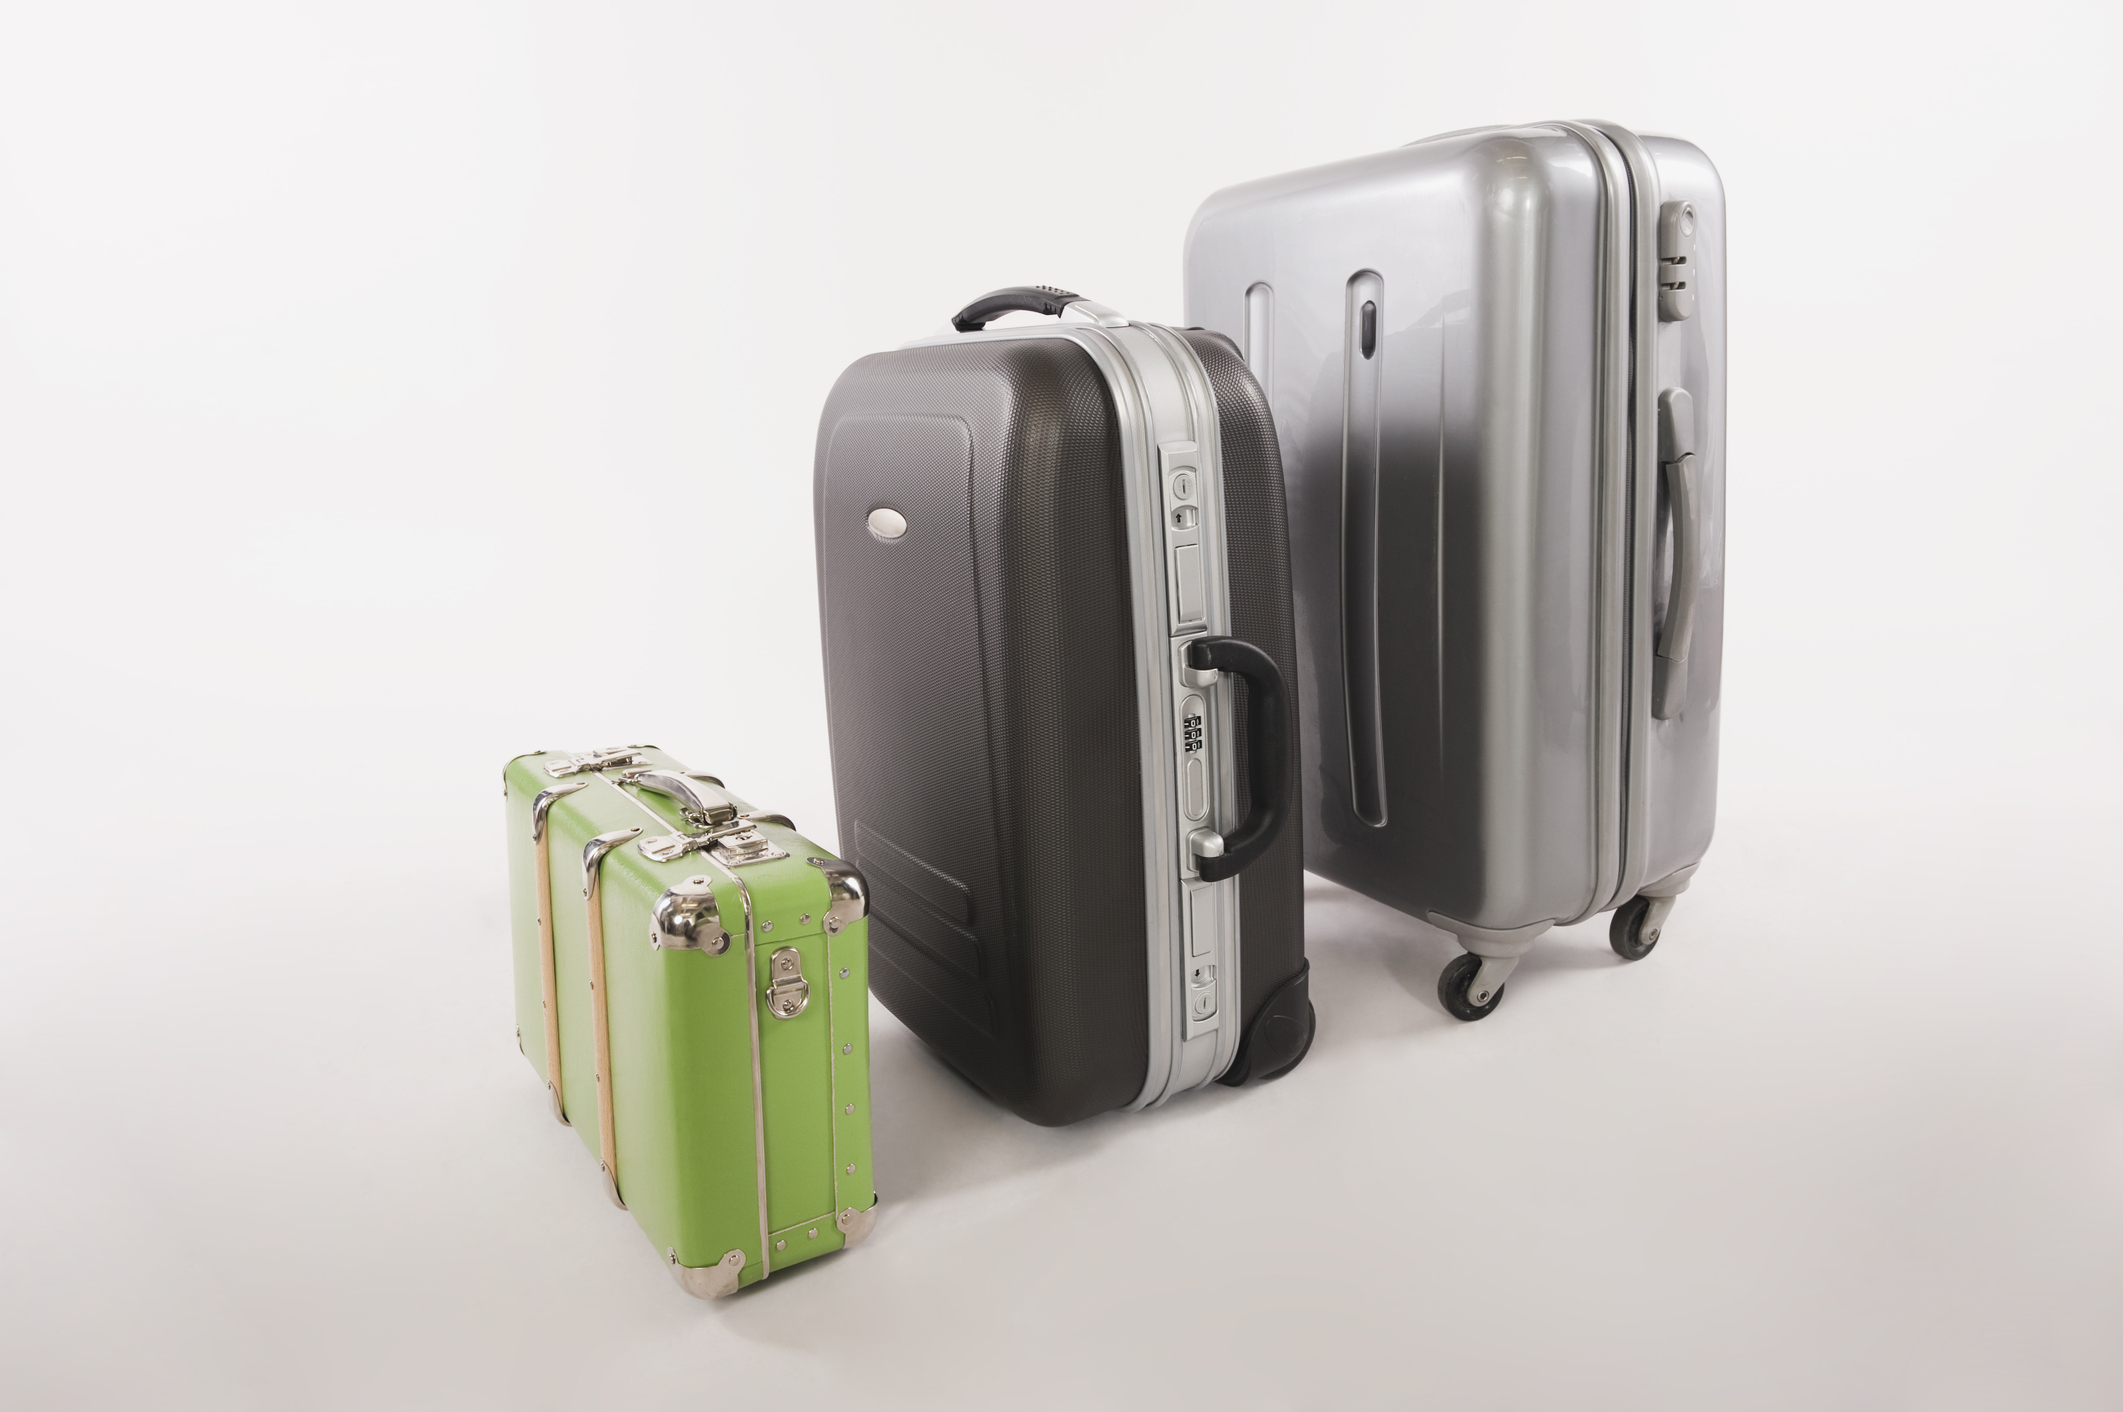 Three suitcases of varying sizes. Checked Luggage and Carry-on Baggage Rules   Skyscanner Canada